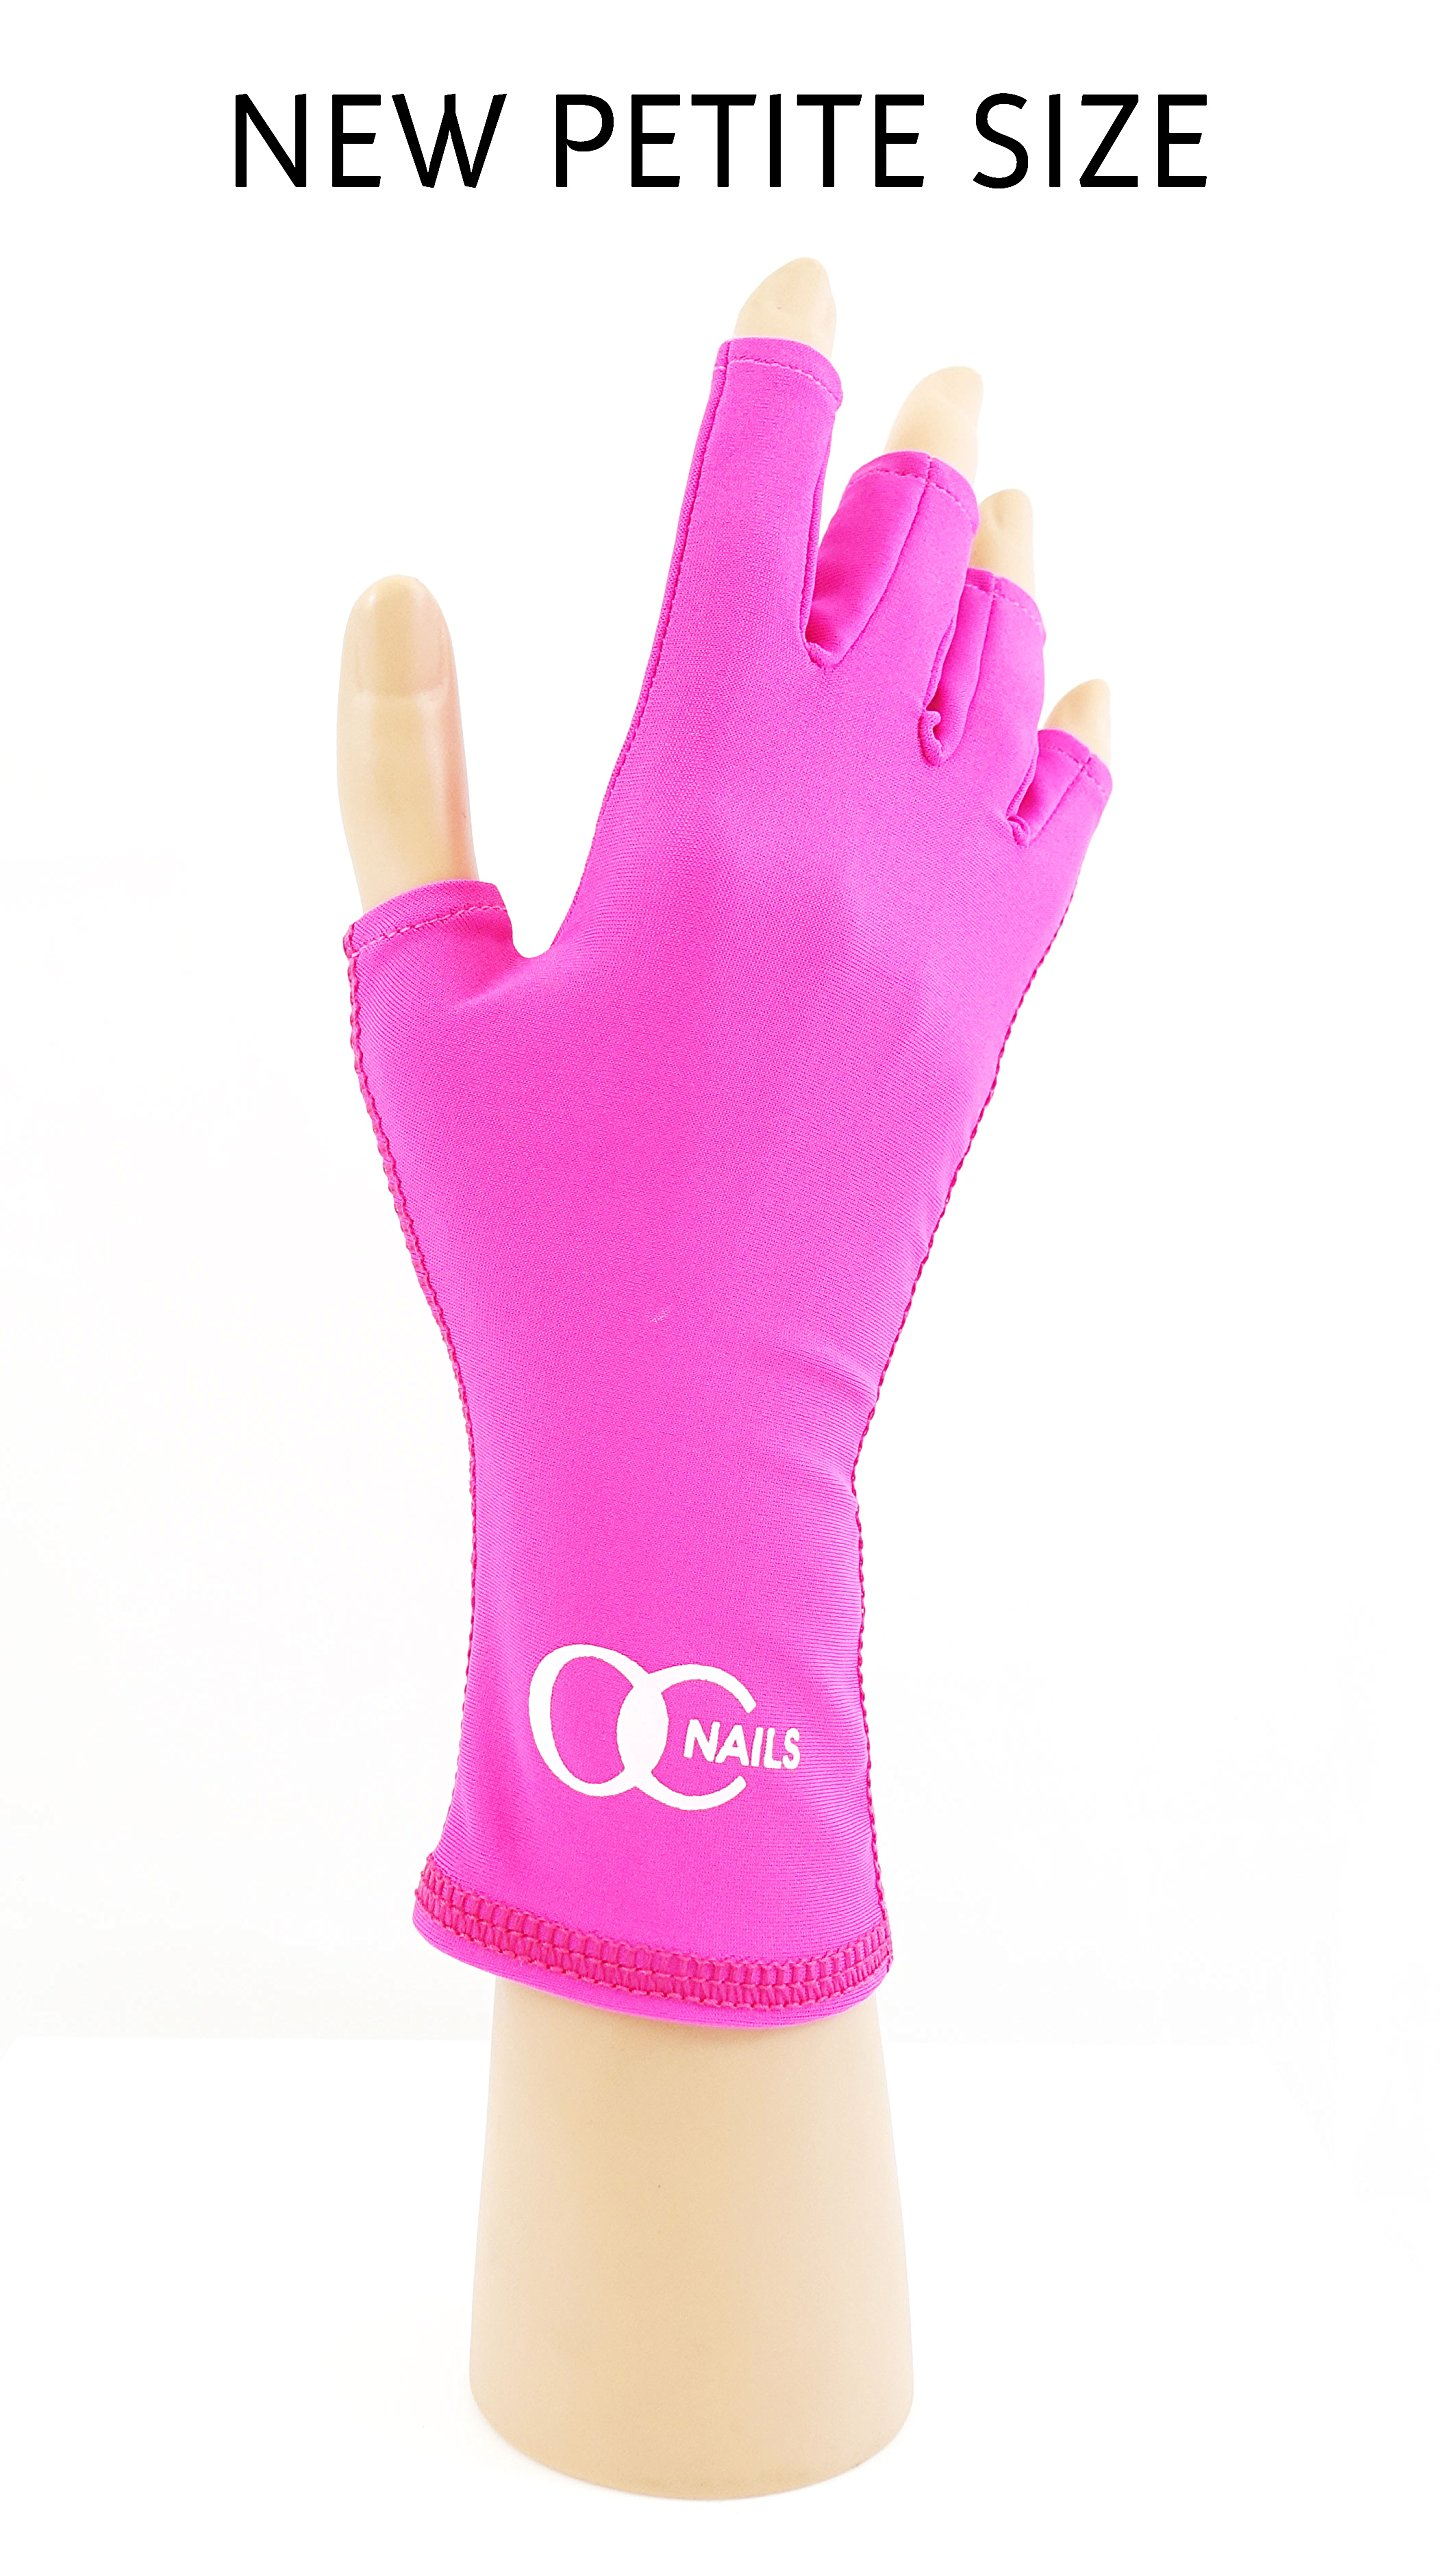 Amazon.com: OC Nails UV Shield Glove (HOT PINK) Anti UV Glove for ...